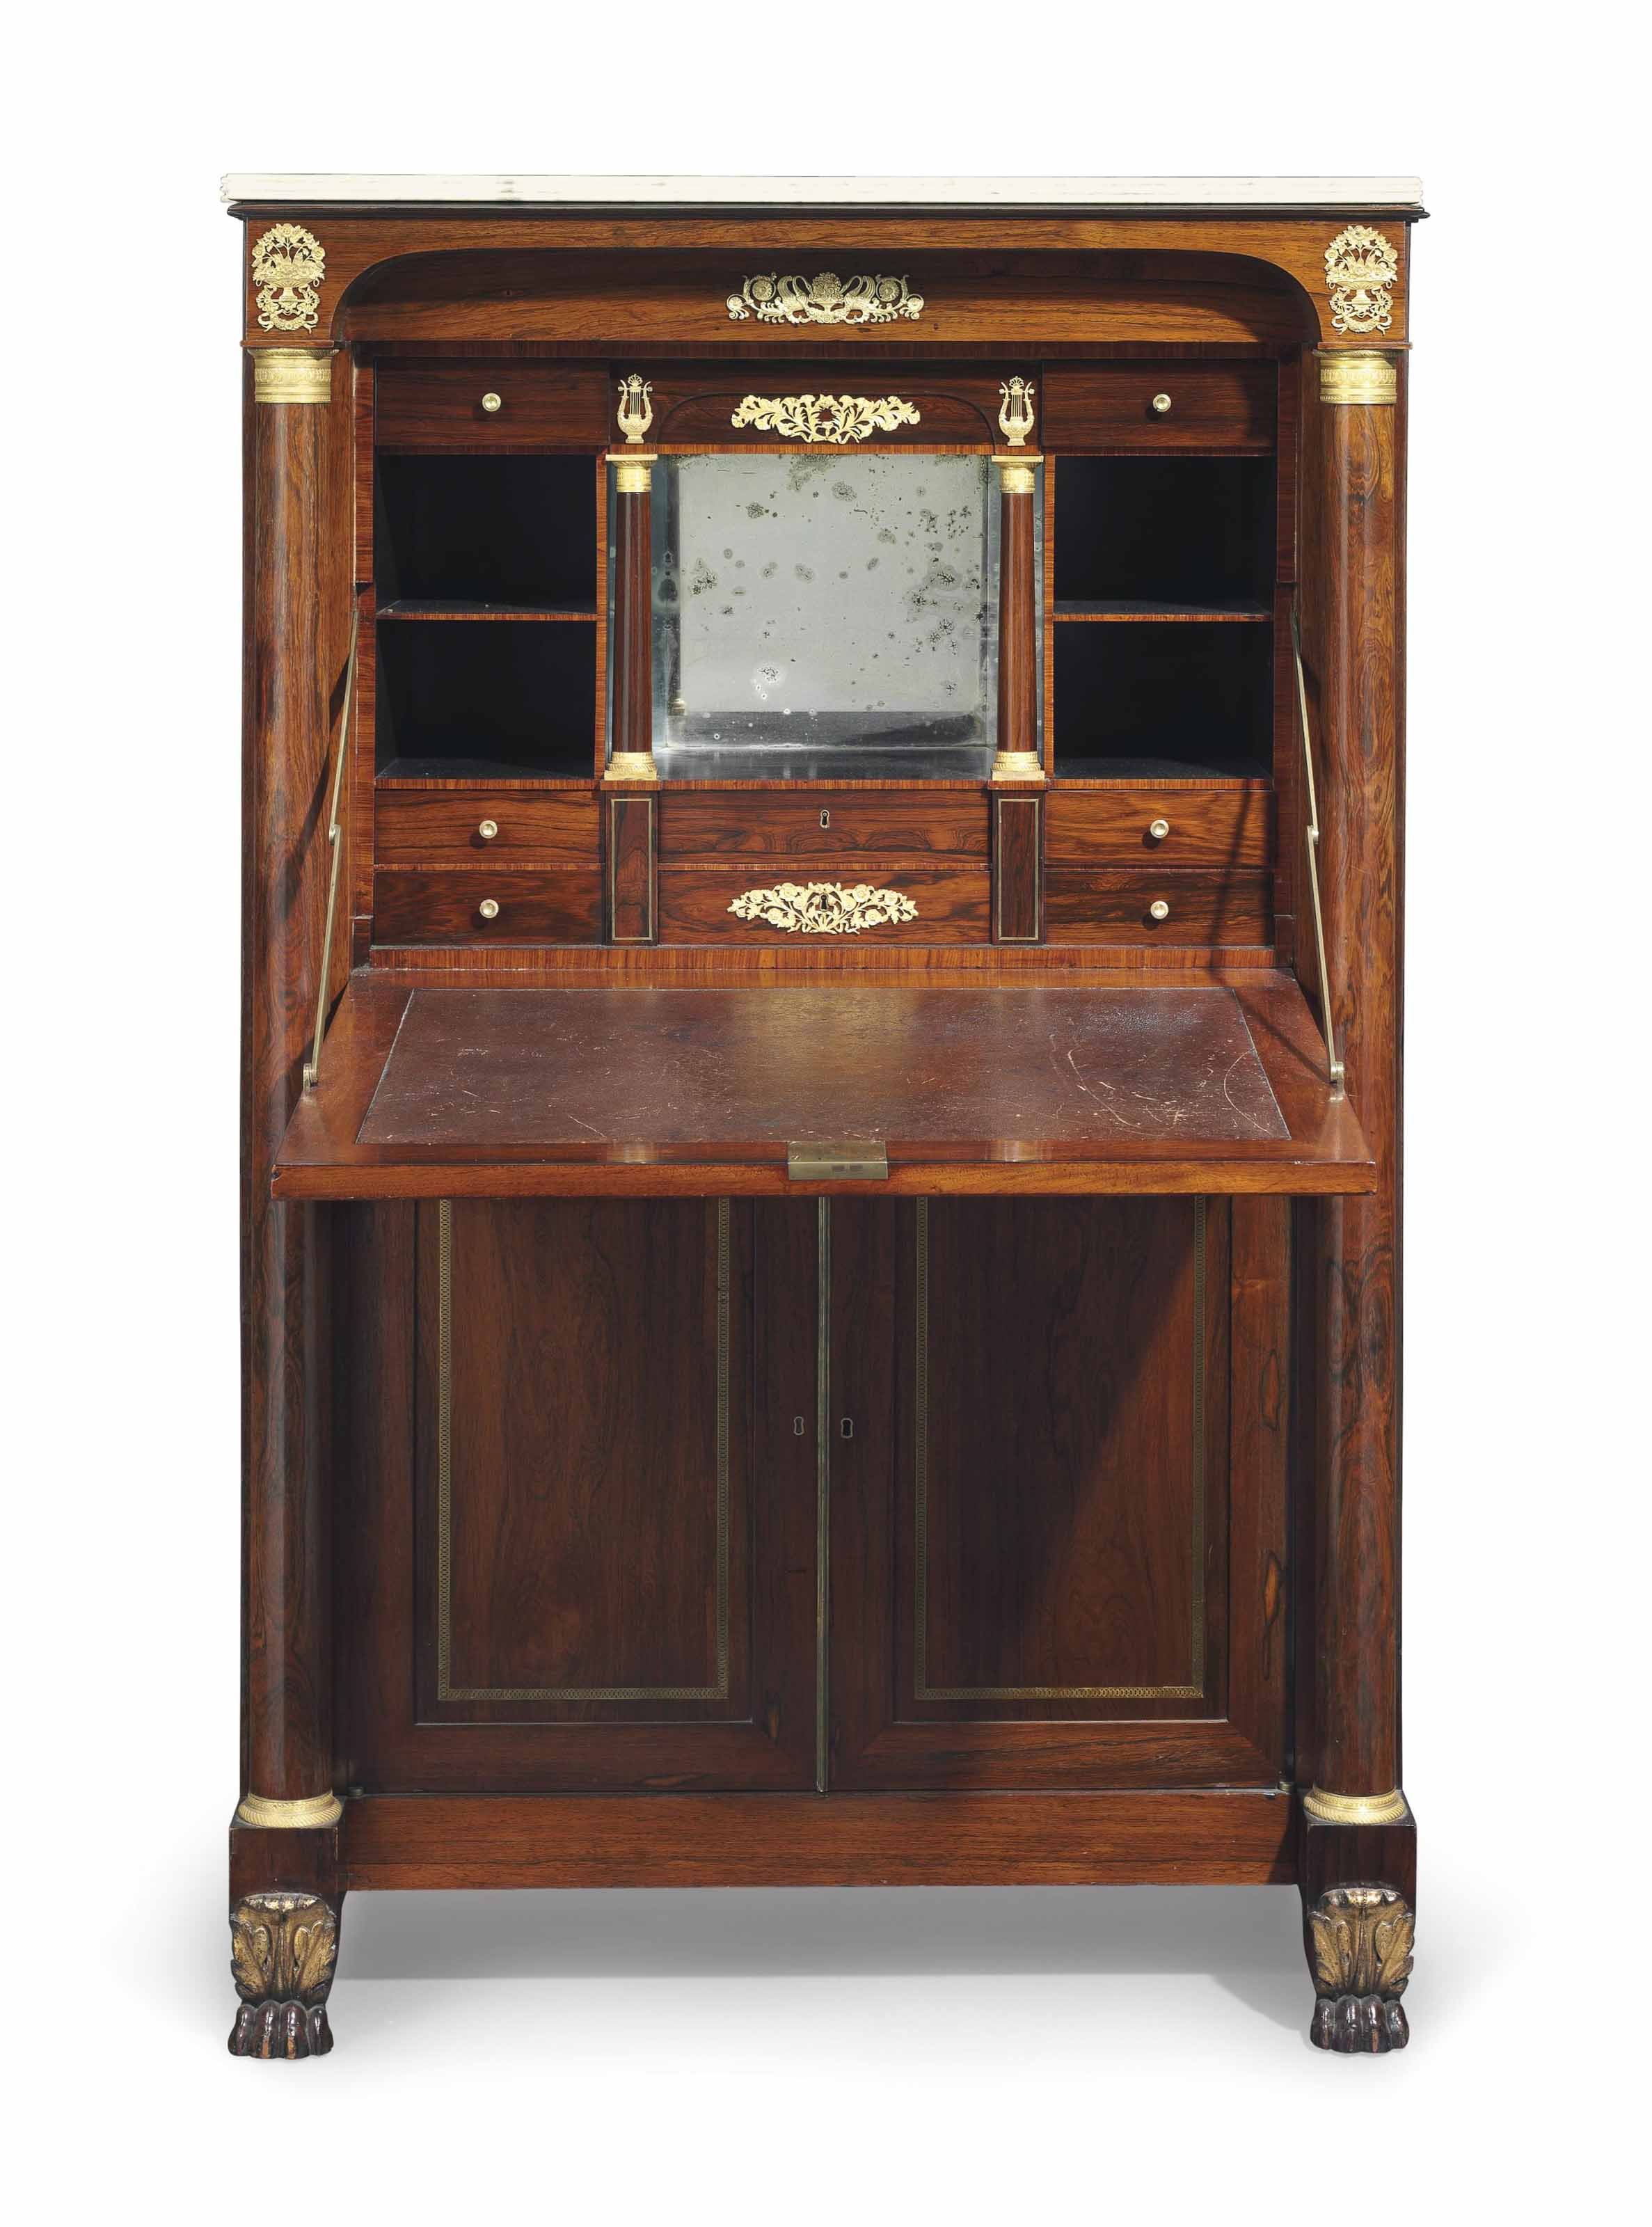 A CLASSICAL PARCEL-GILT, ORMOLU-MOUNTED AND BRASS-INLAID ROSEWOOD MARBLE-TOP SECRETAIRE A ABATTANT